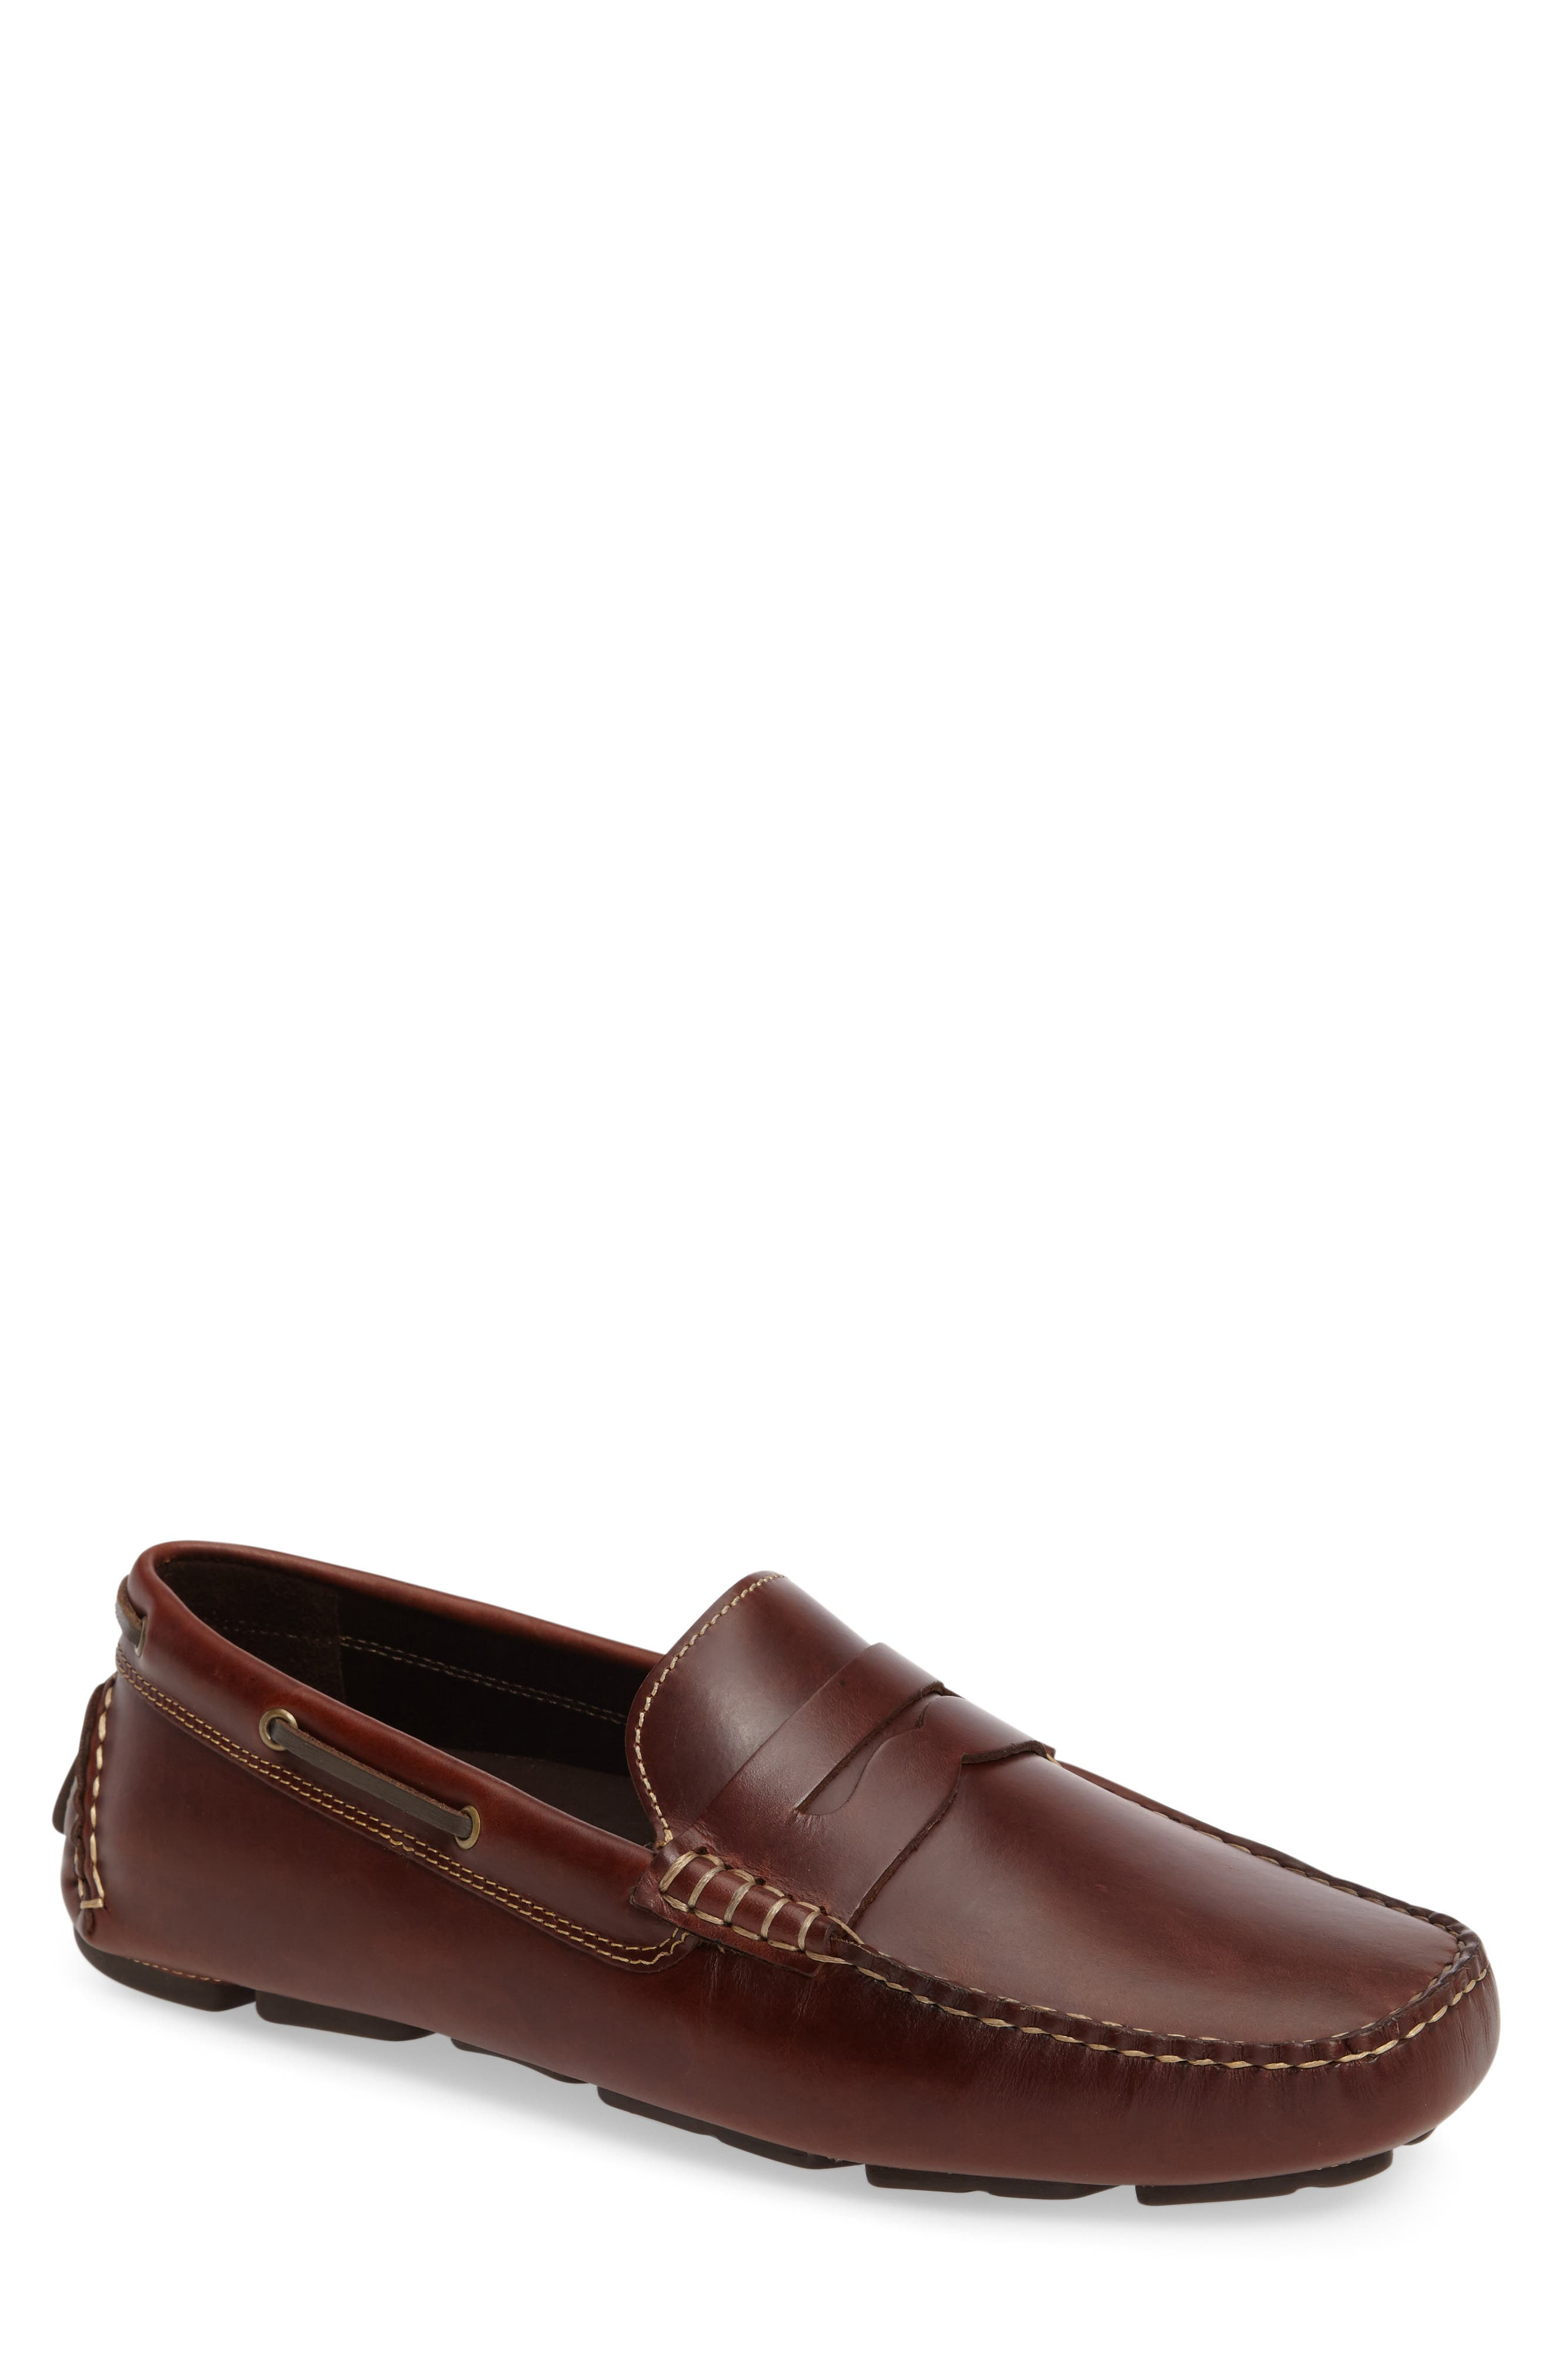 Johnston & Murphy Gibson Penny Driving Loafer